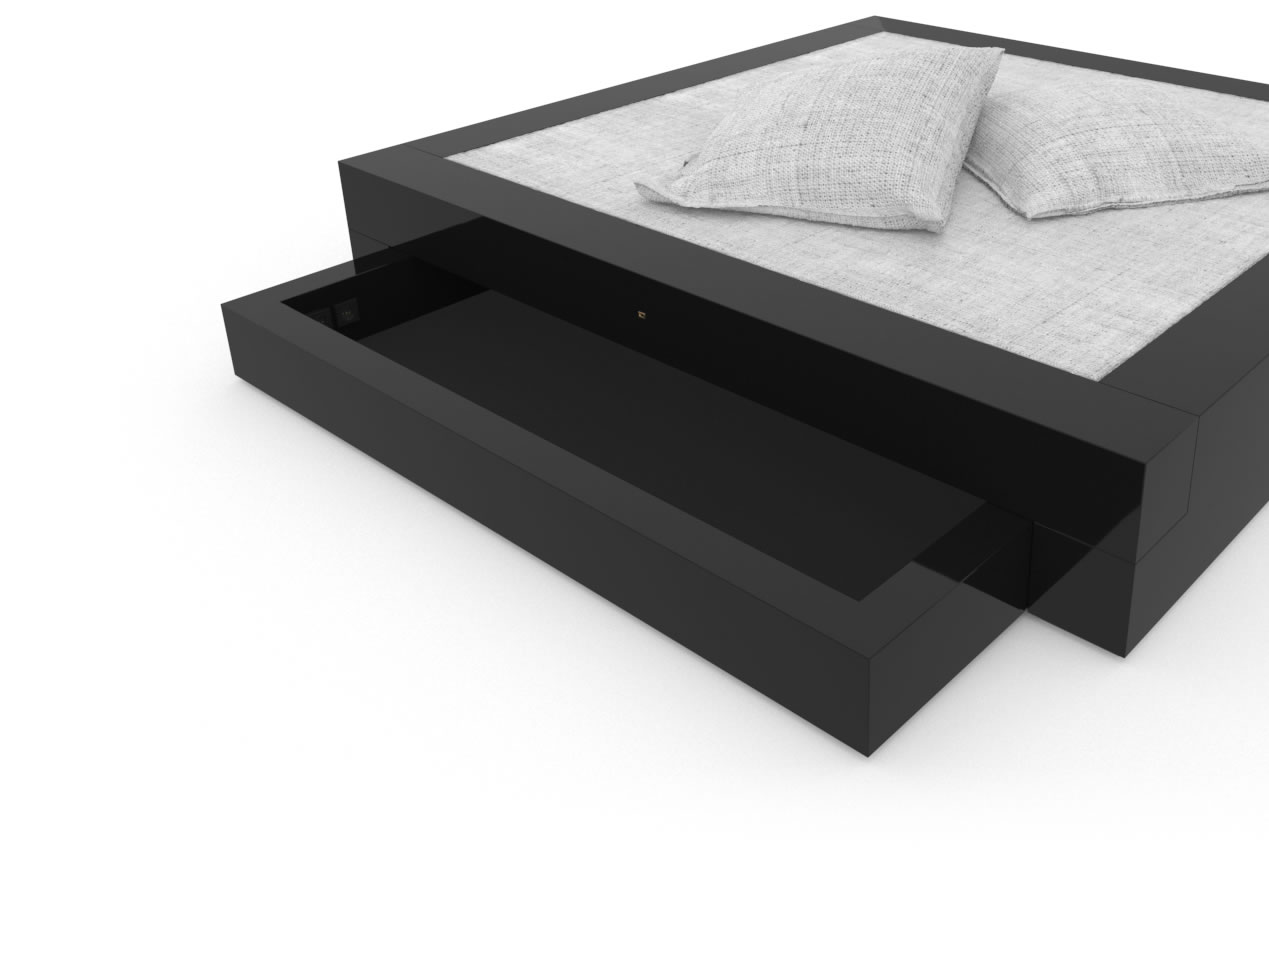 FELIX SCHWAKE BED I I 2 Under Bed Drawers High Gloss Black Lacquer Mirror polished Piano Finish Tailor Bed with Drawers